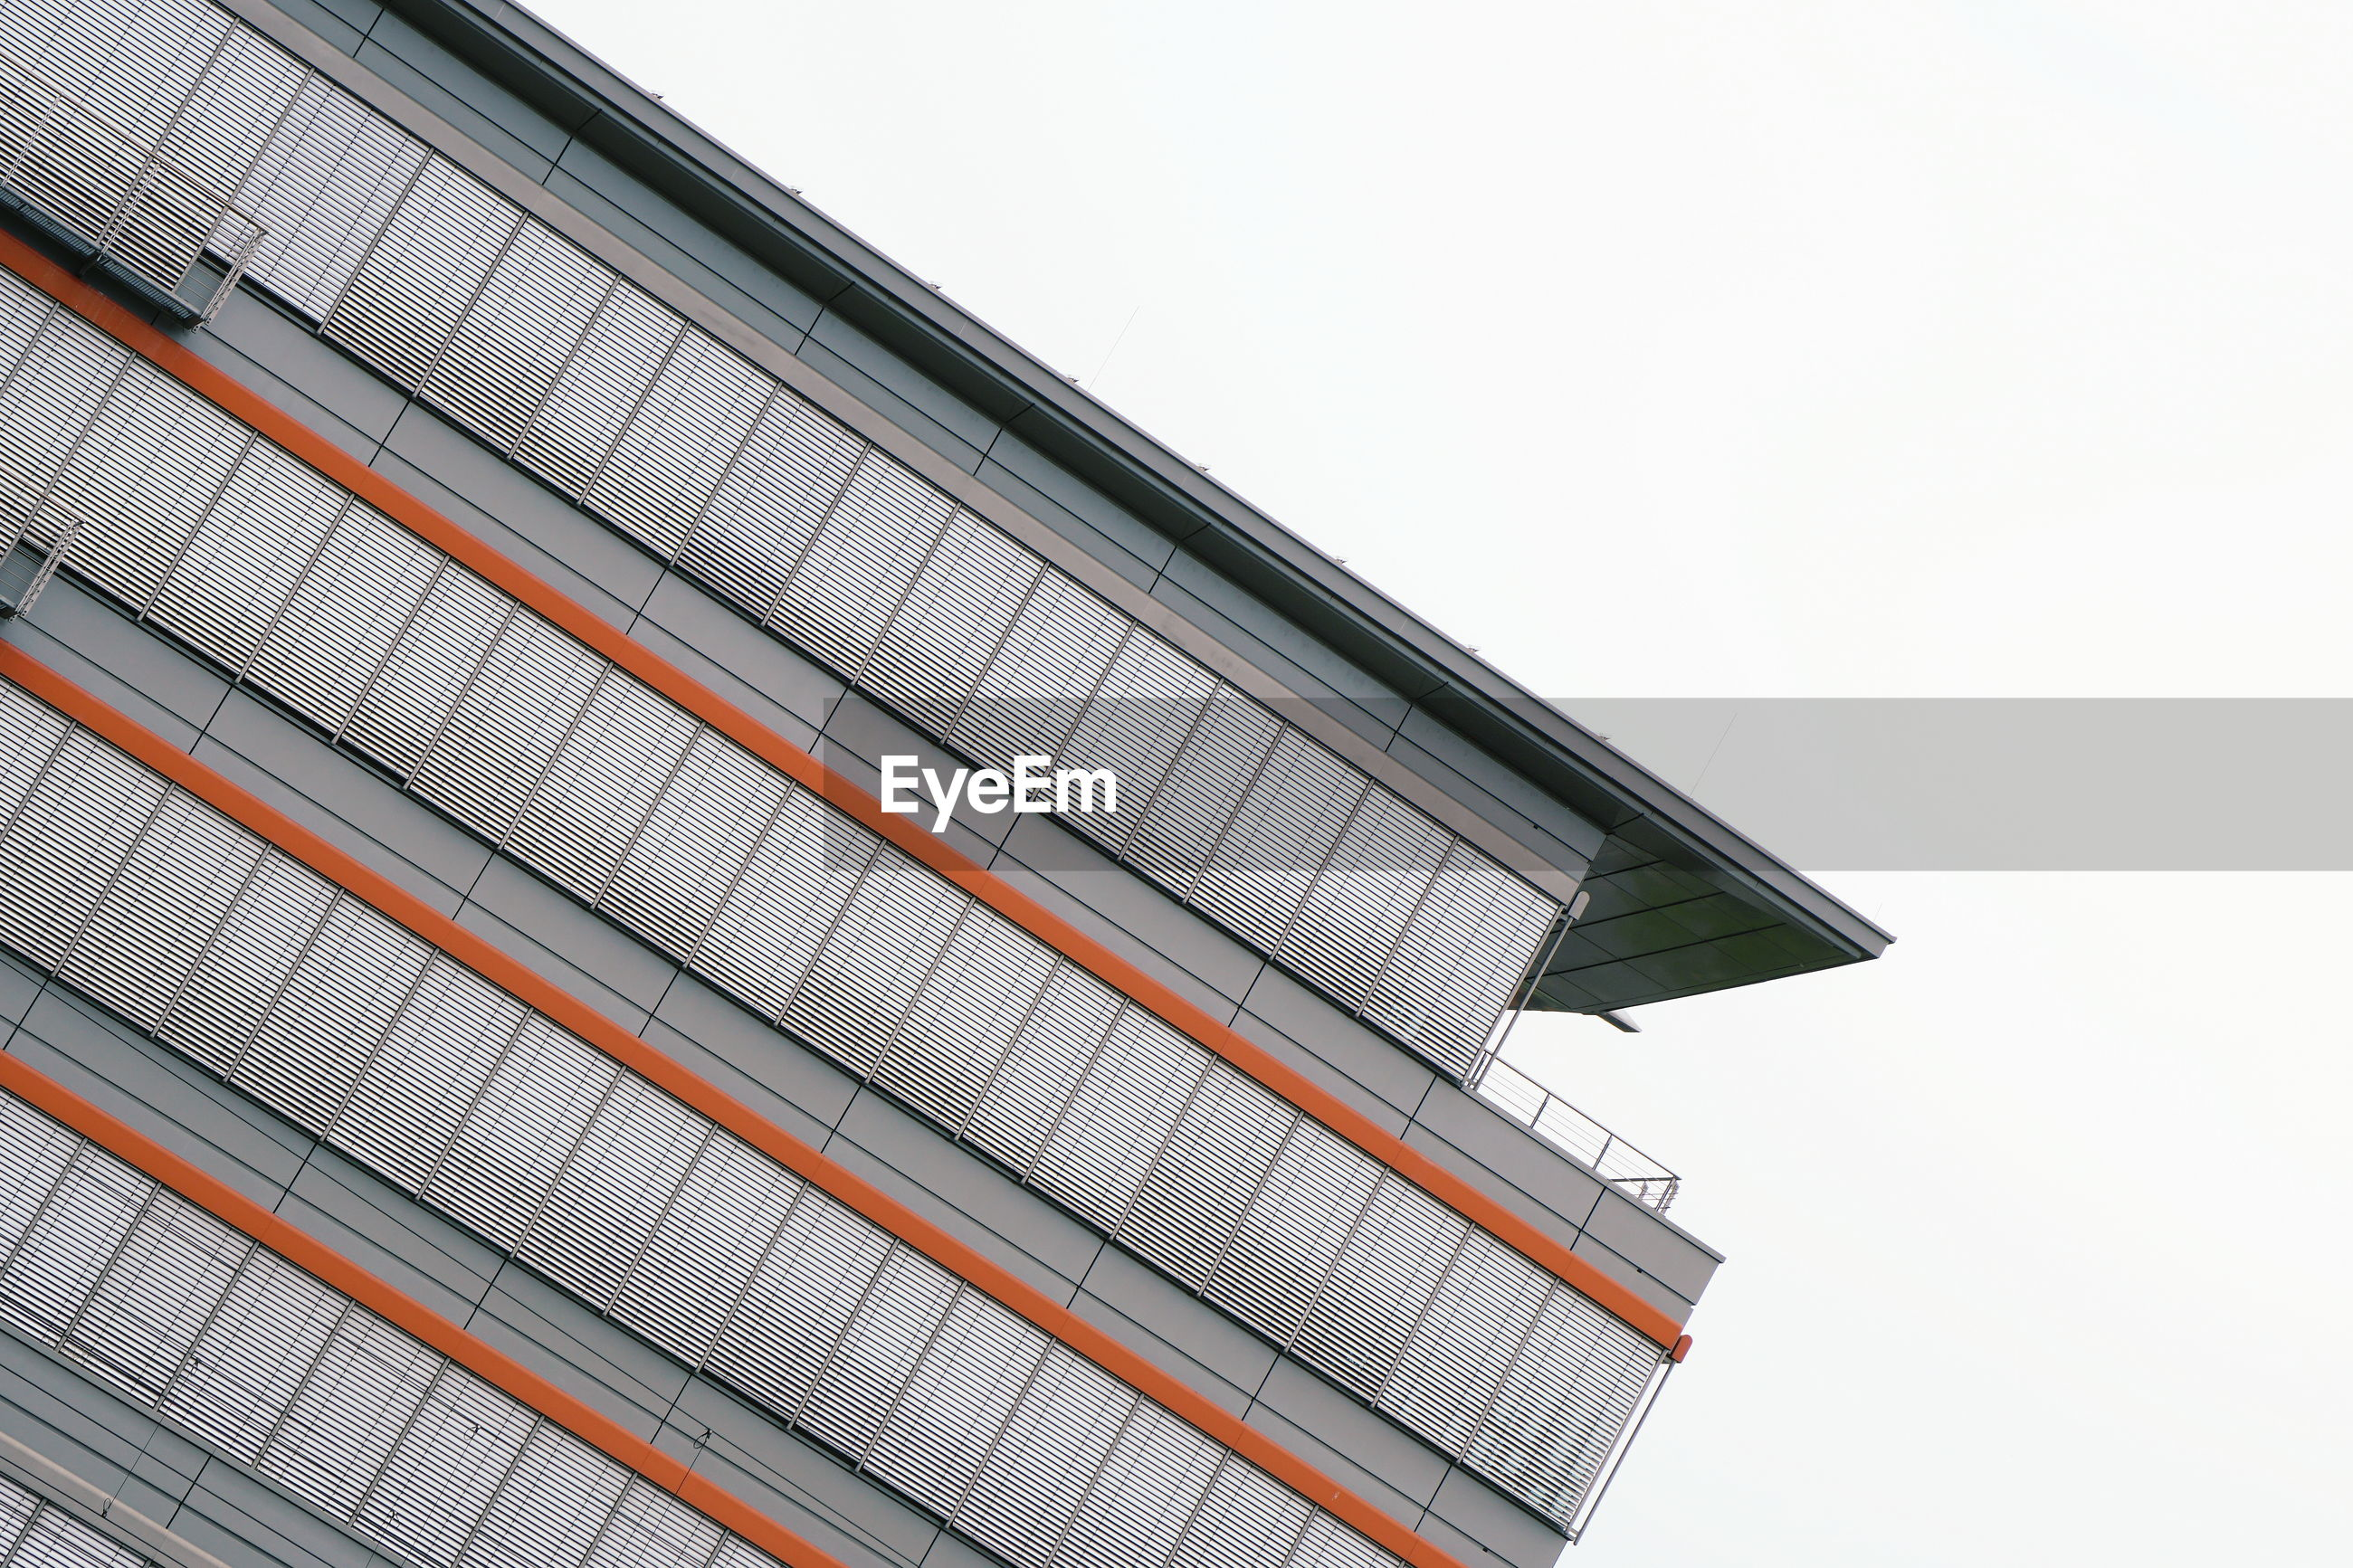 architecture, roof, built structure, facade, building exterior, low angle view, no people, building, sky, line, business, city, clear sky, outdoors, copy space, day, nature, industry